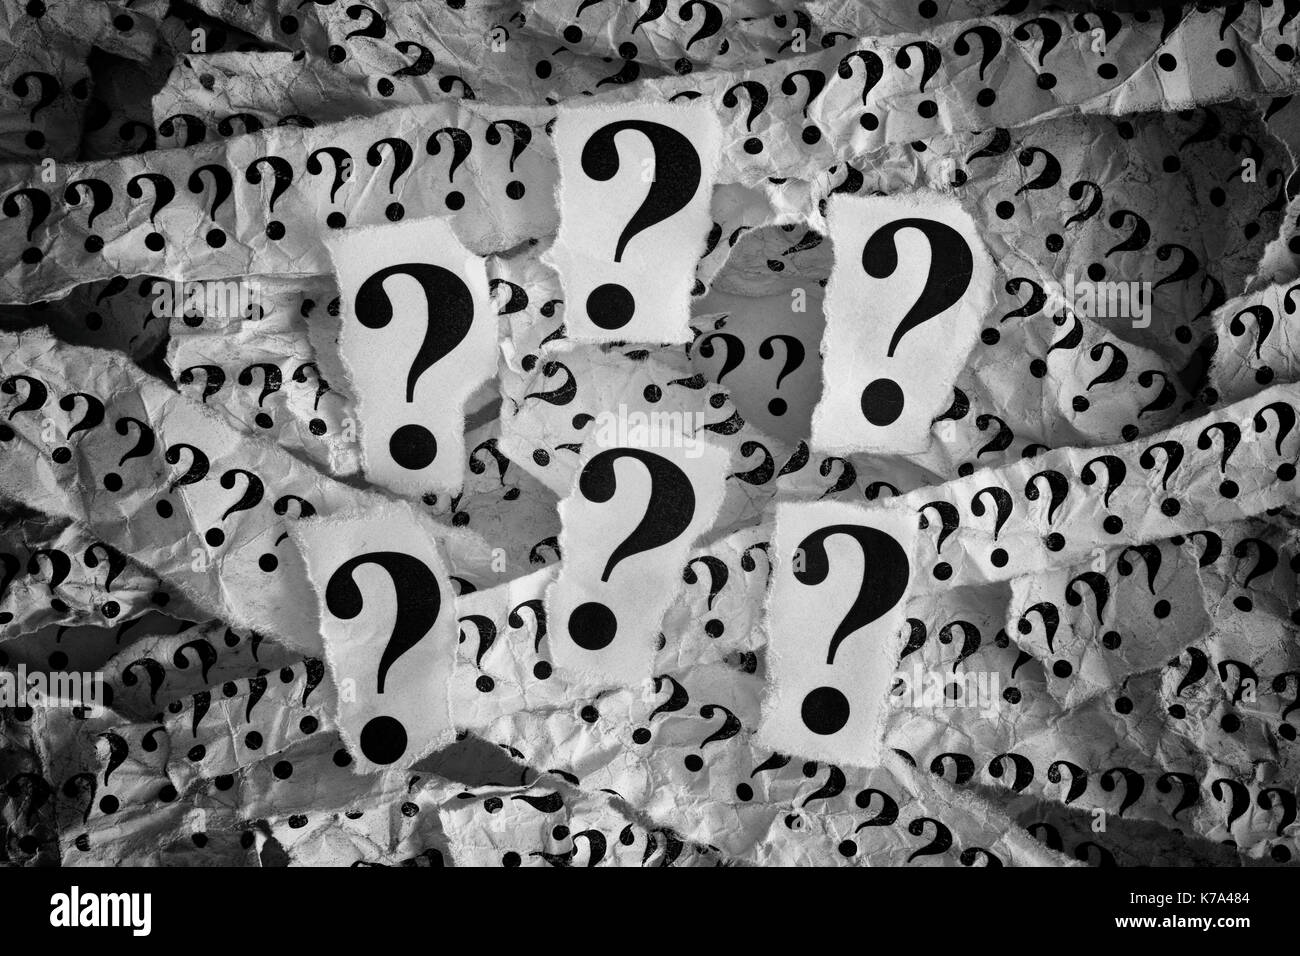 Question mark. Torn pieces of paper with question marks. Concept Image. Black and White. Closeup. - Stock Image